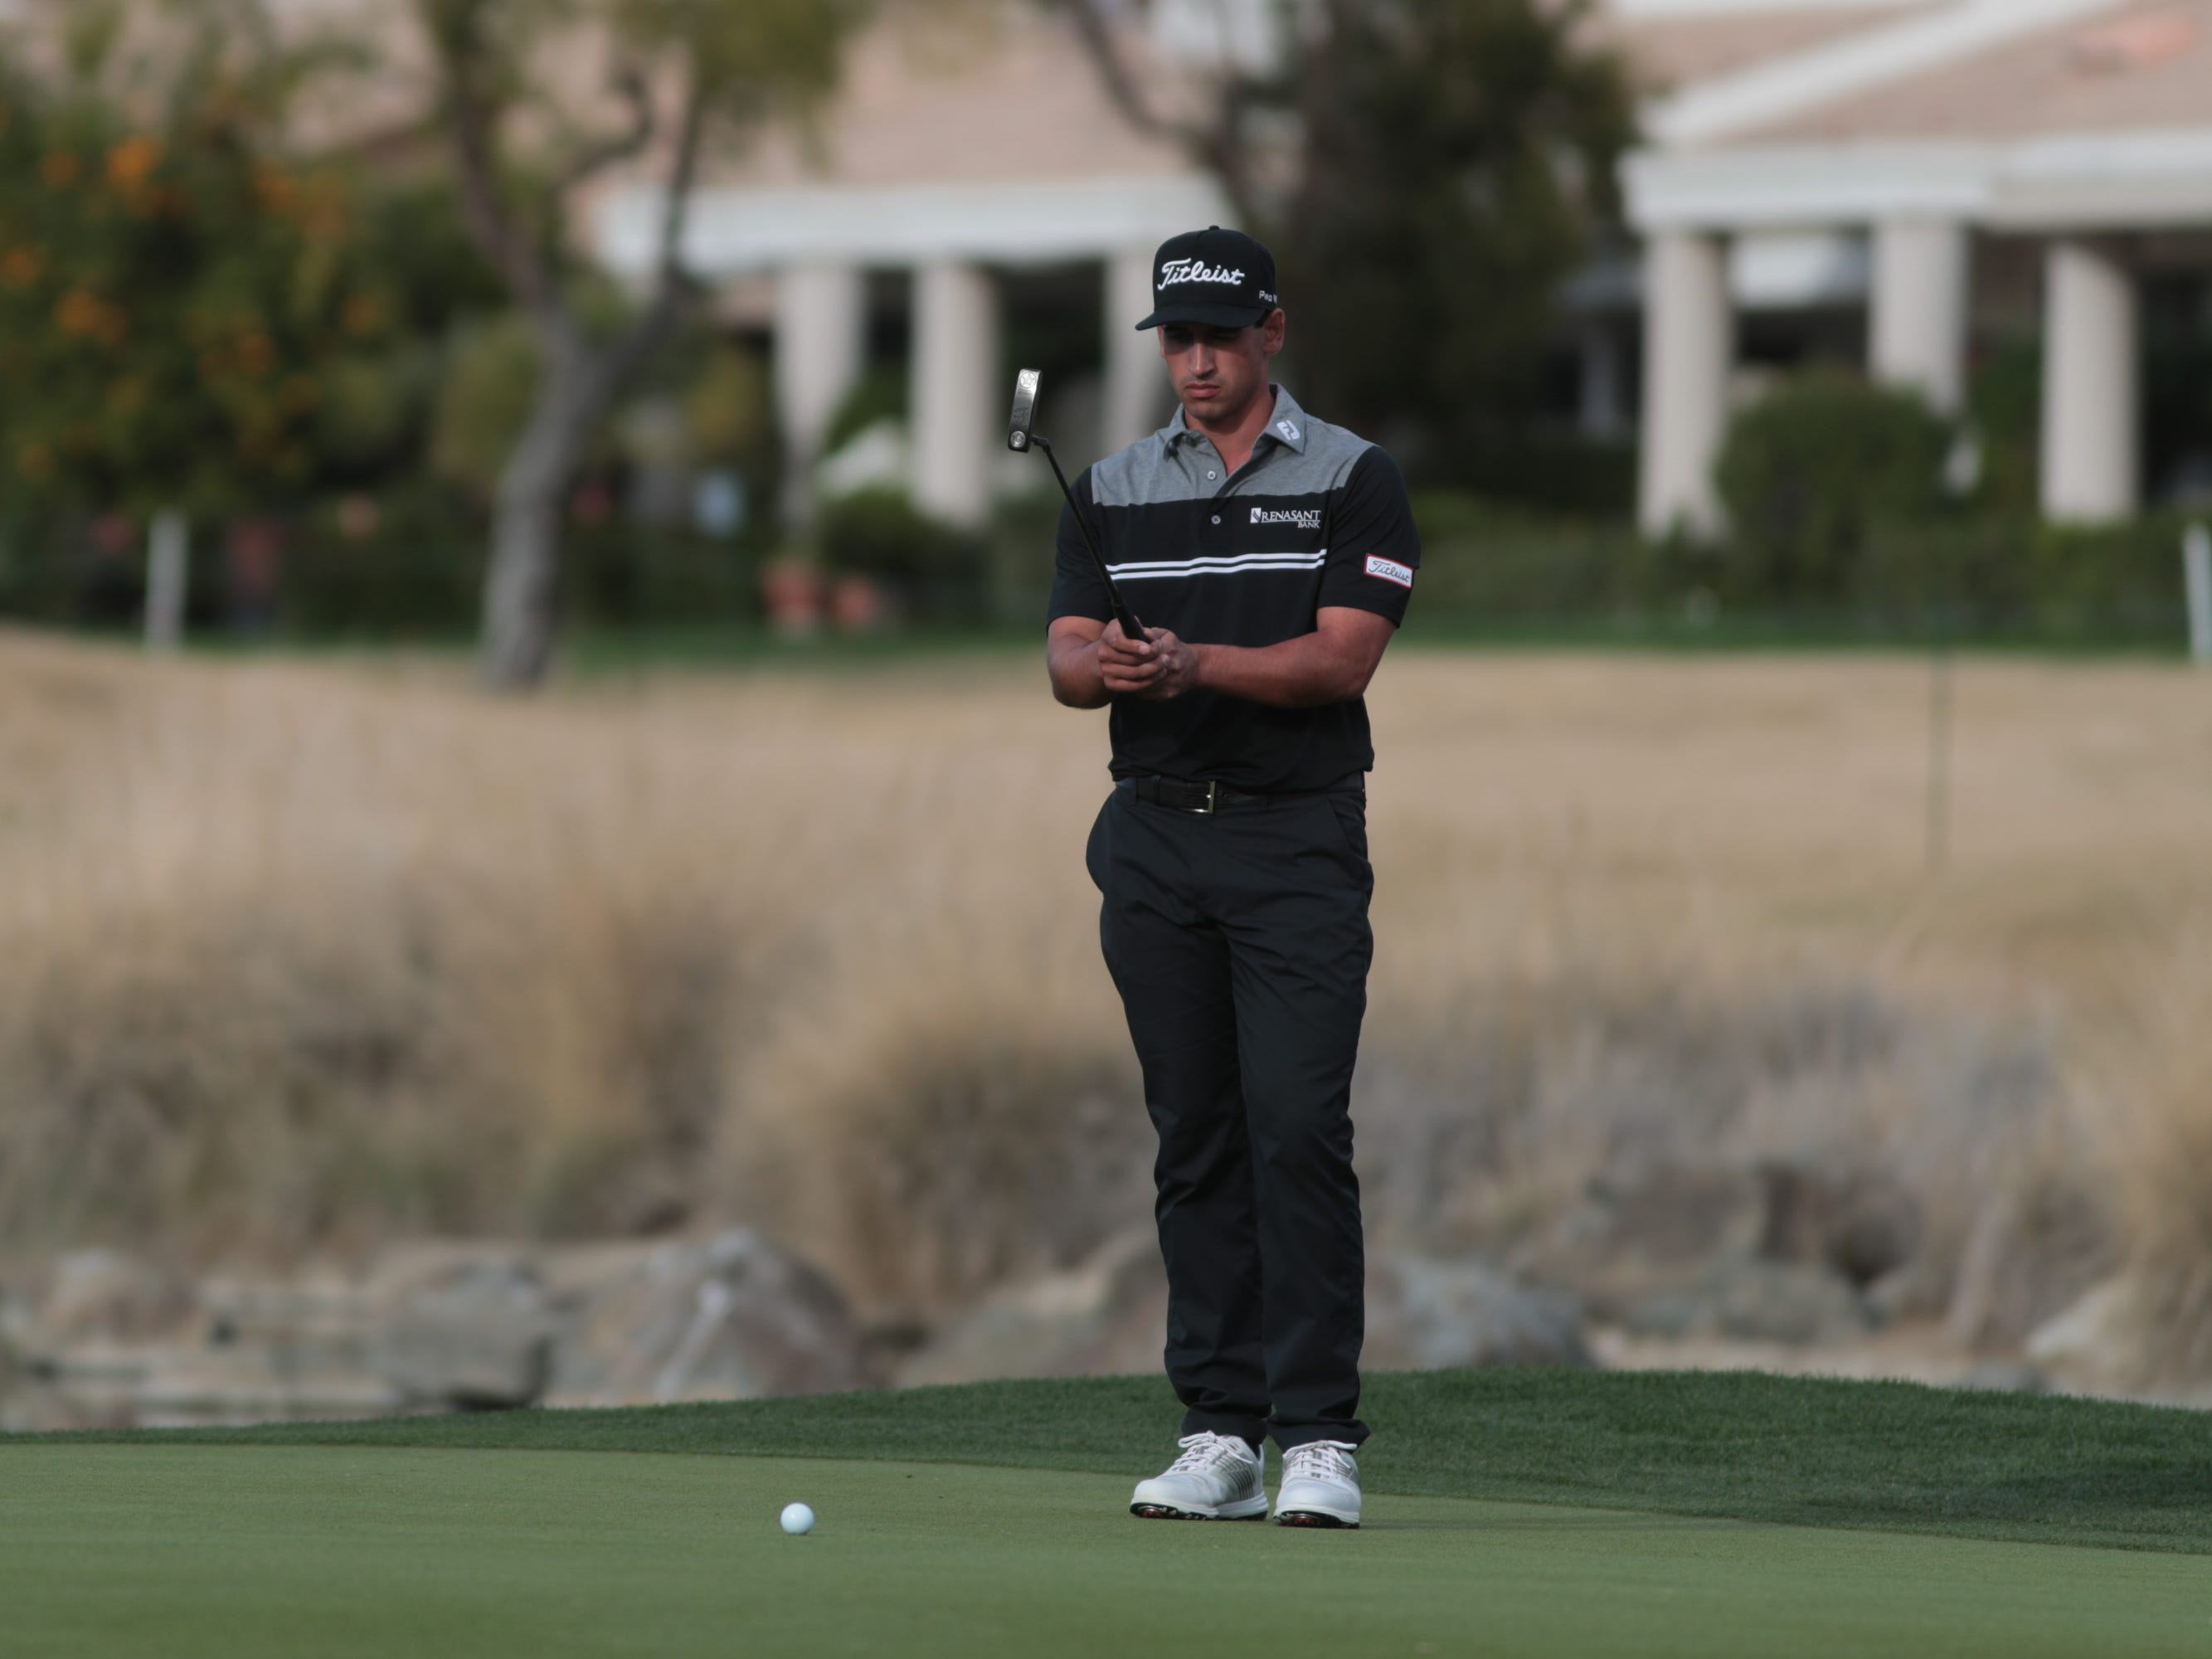 Dominic Bozzelli prepares for a putt on the 17th hole of the 2019 Desert Classic, Sunday, January 20, 2019.